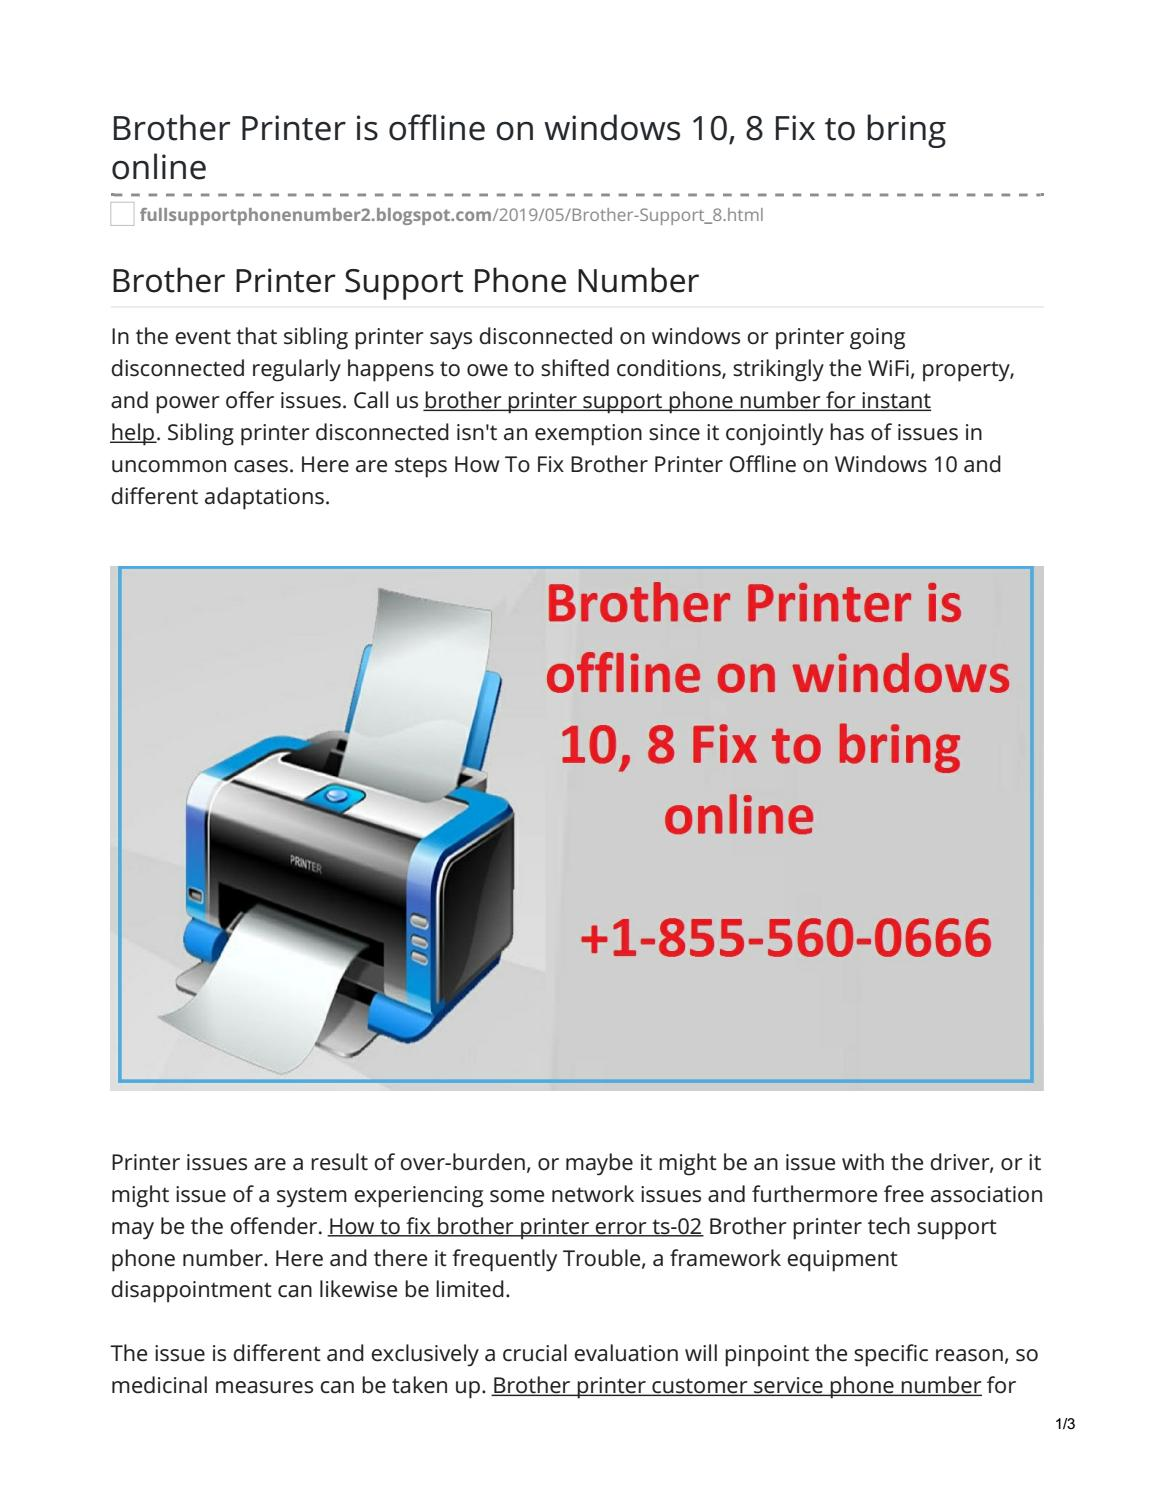 Brother Printer Support +1-855-560-0666 Phone Number To Get